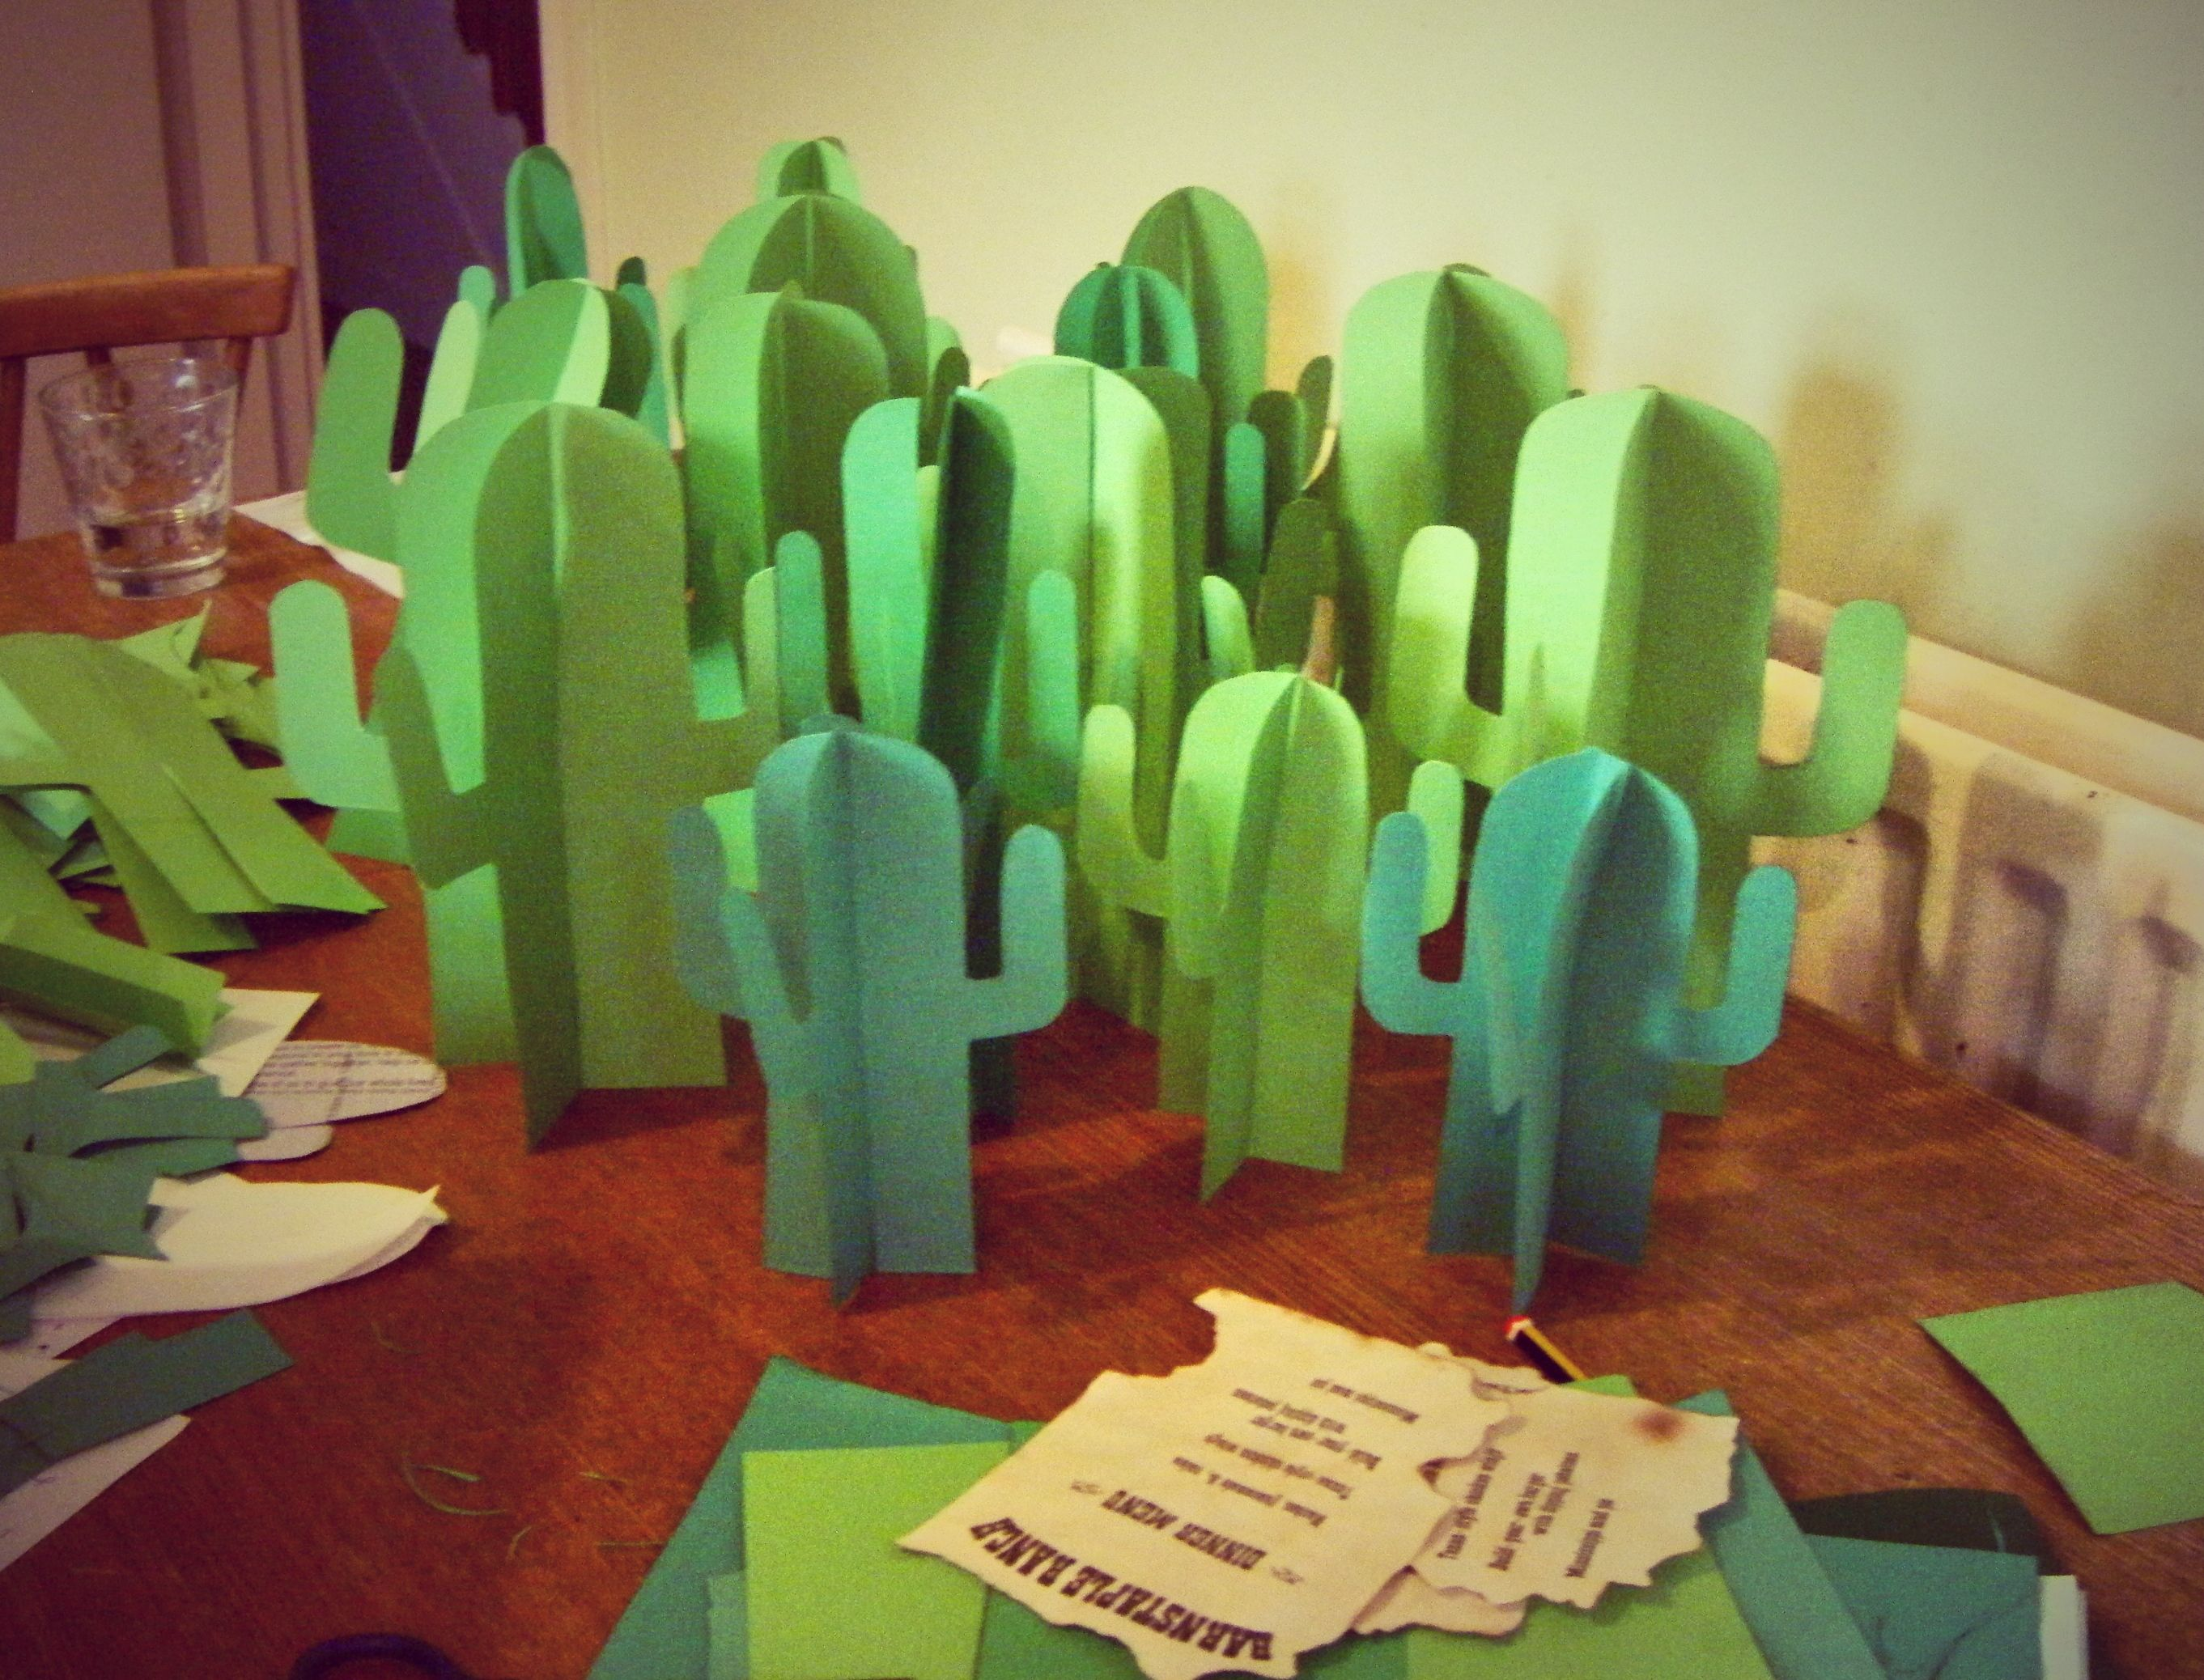 Wild west themed cacti table decorations try making big Table making ideas